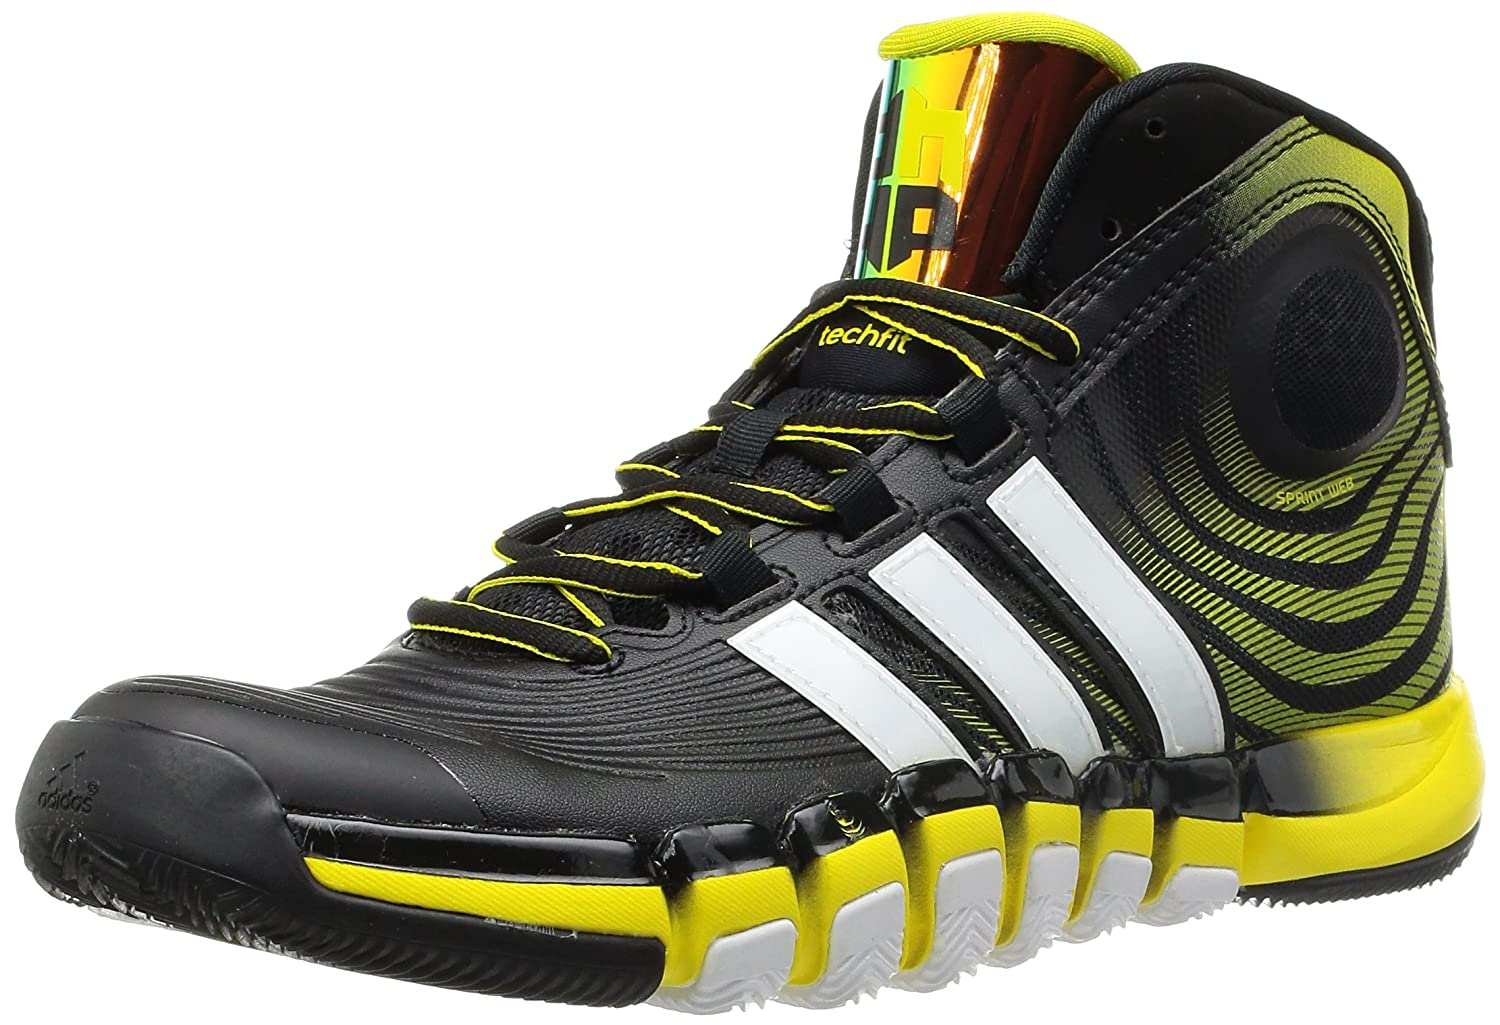 the best attitude 8e733 137c0 Adidas Mens D-Howard 4 Shoes blackyellow-UK 9 Amazon.co.uk Sports   Outdoors